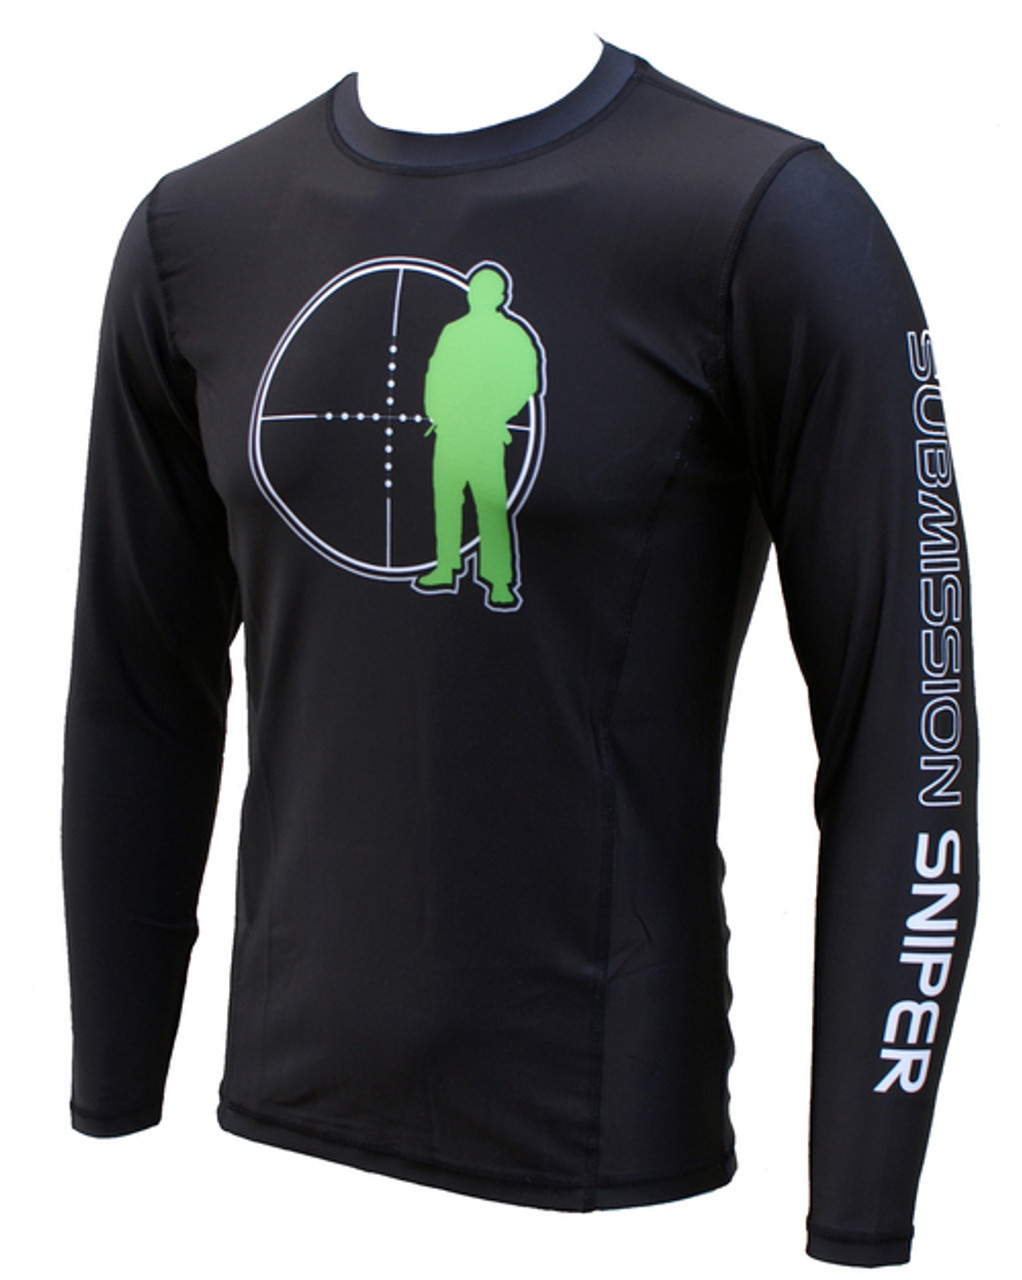 Core Rash Guards, Spats & Shorts